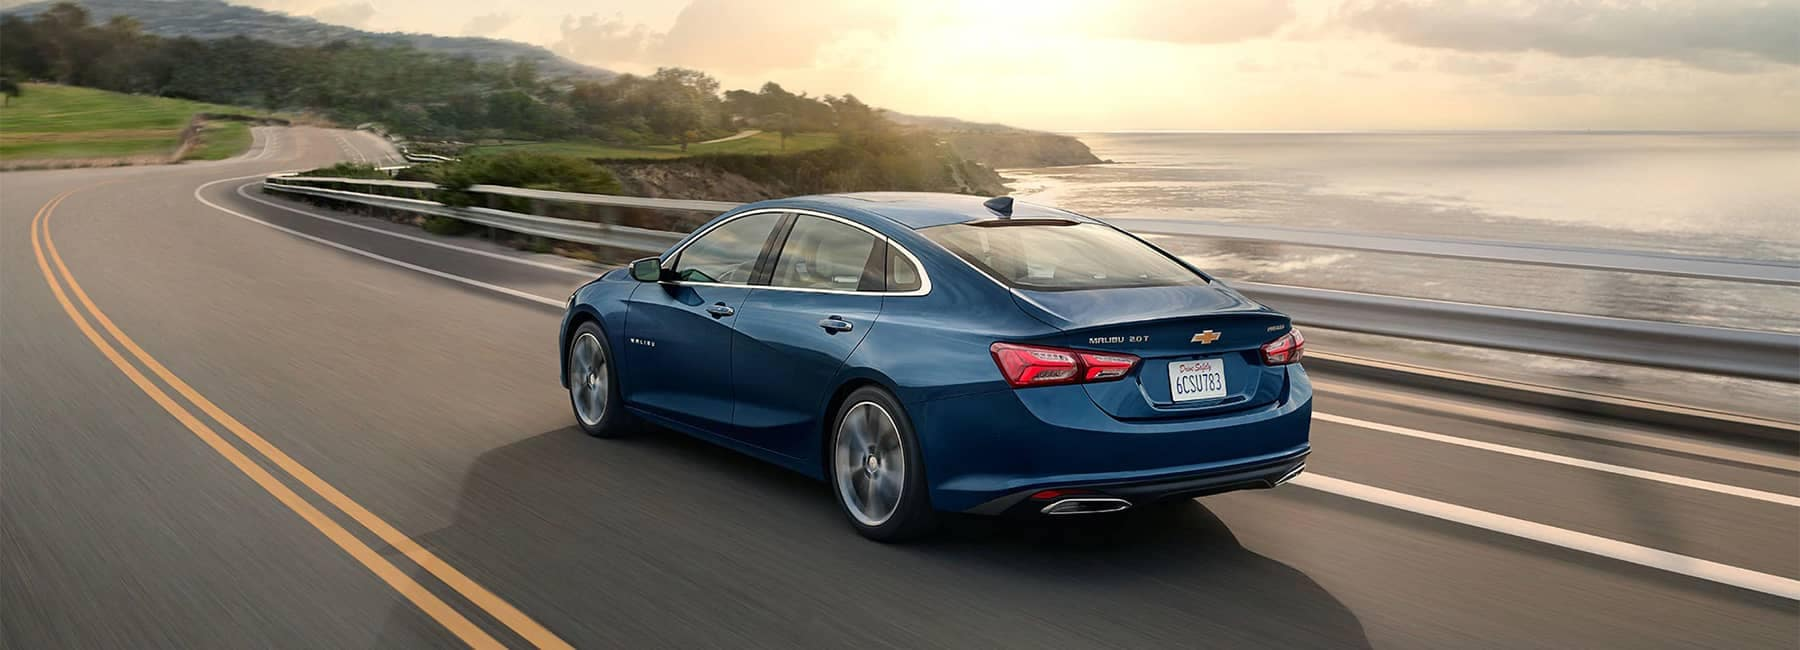 2020 Blue Chevy Malibu Midsize Car Rear Side View